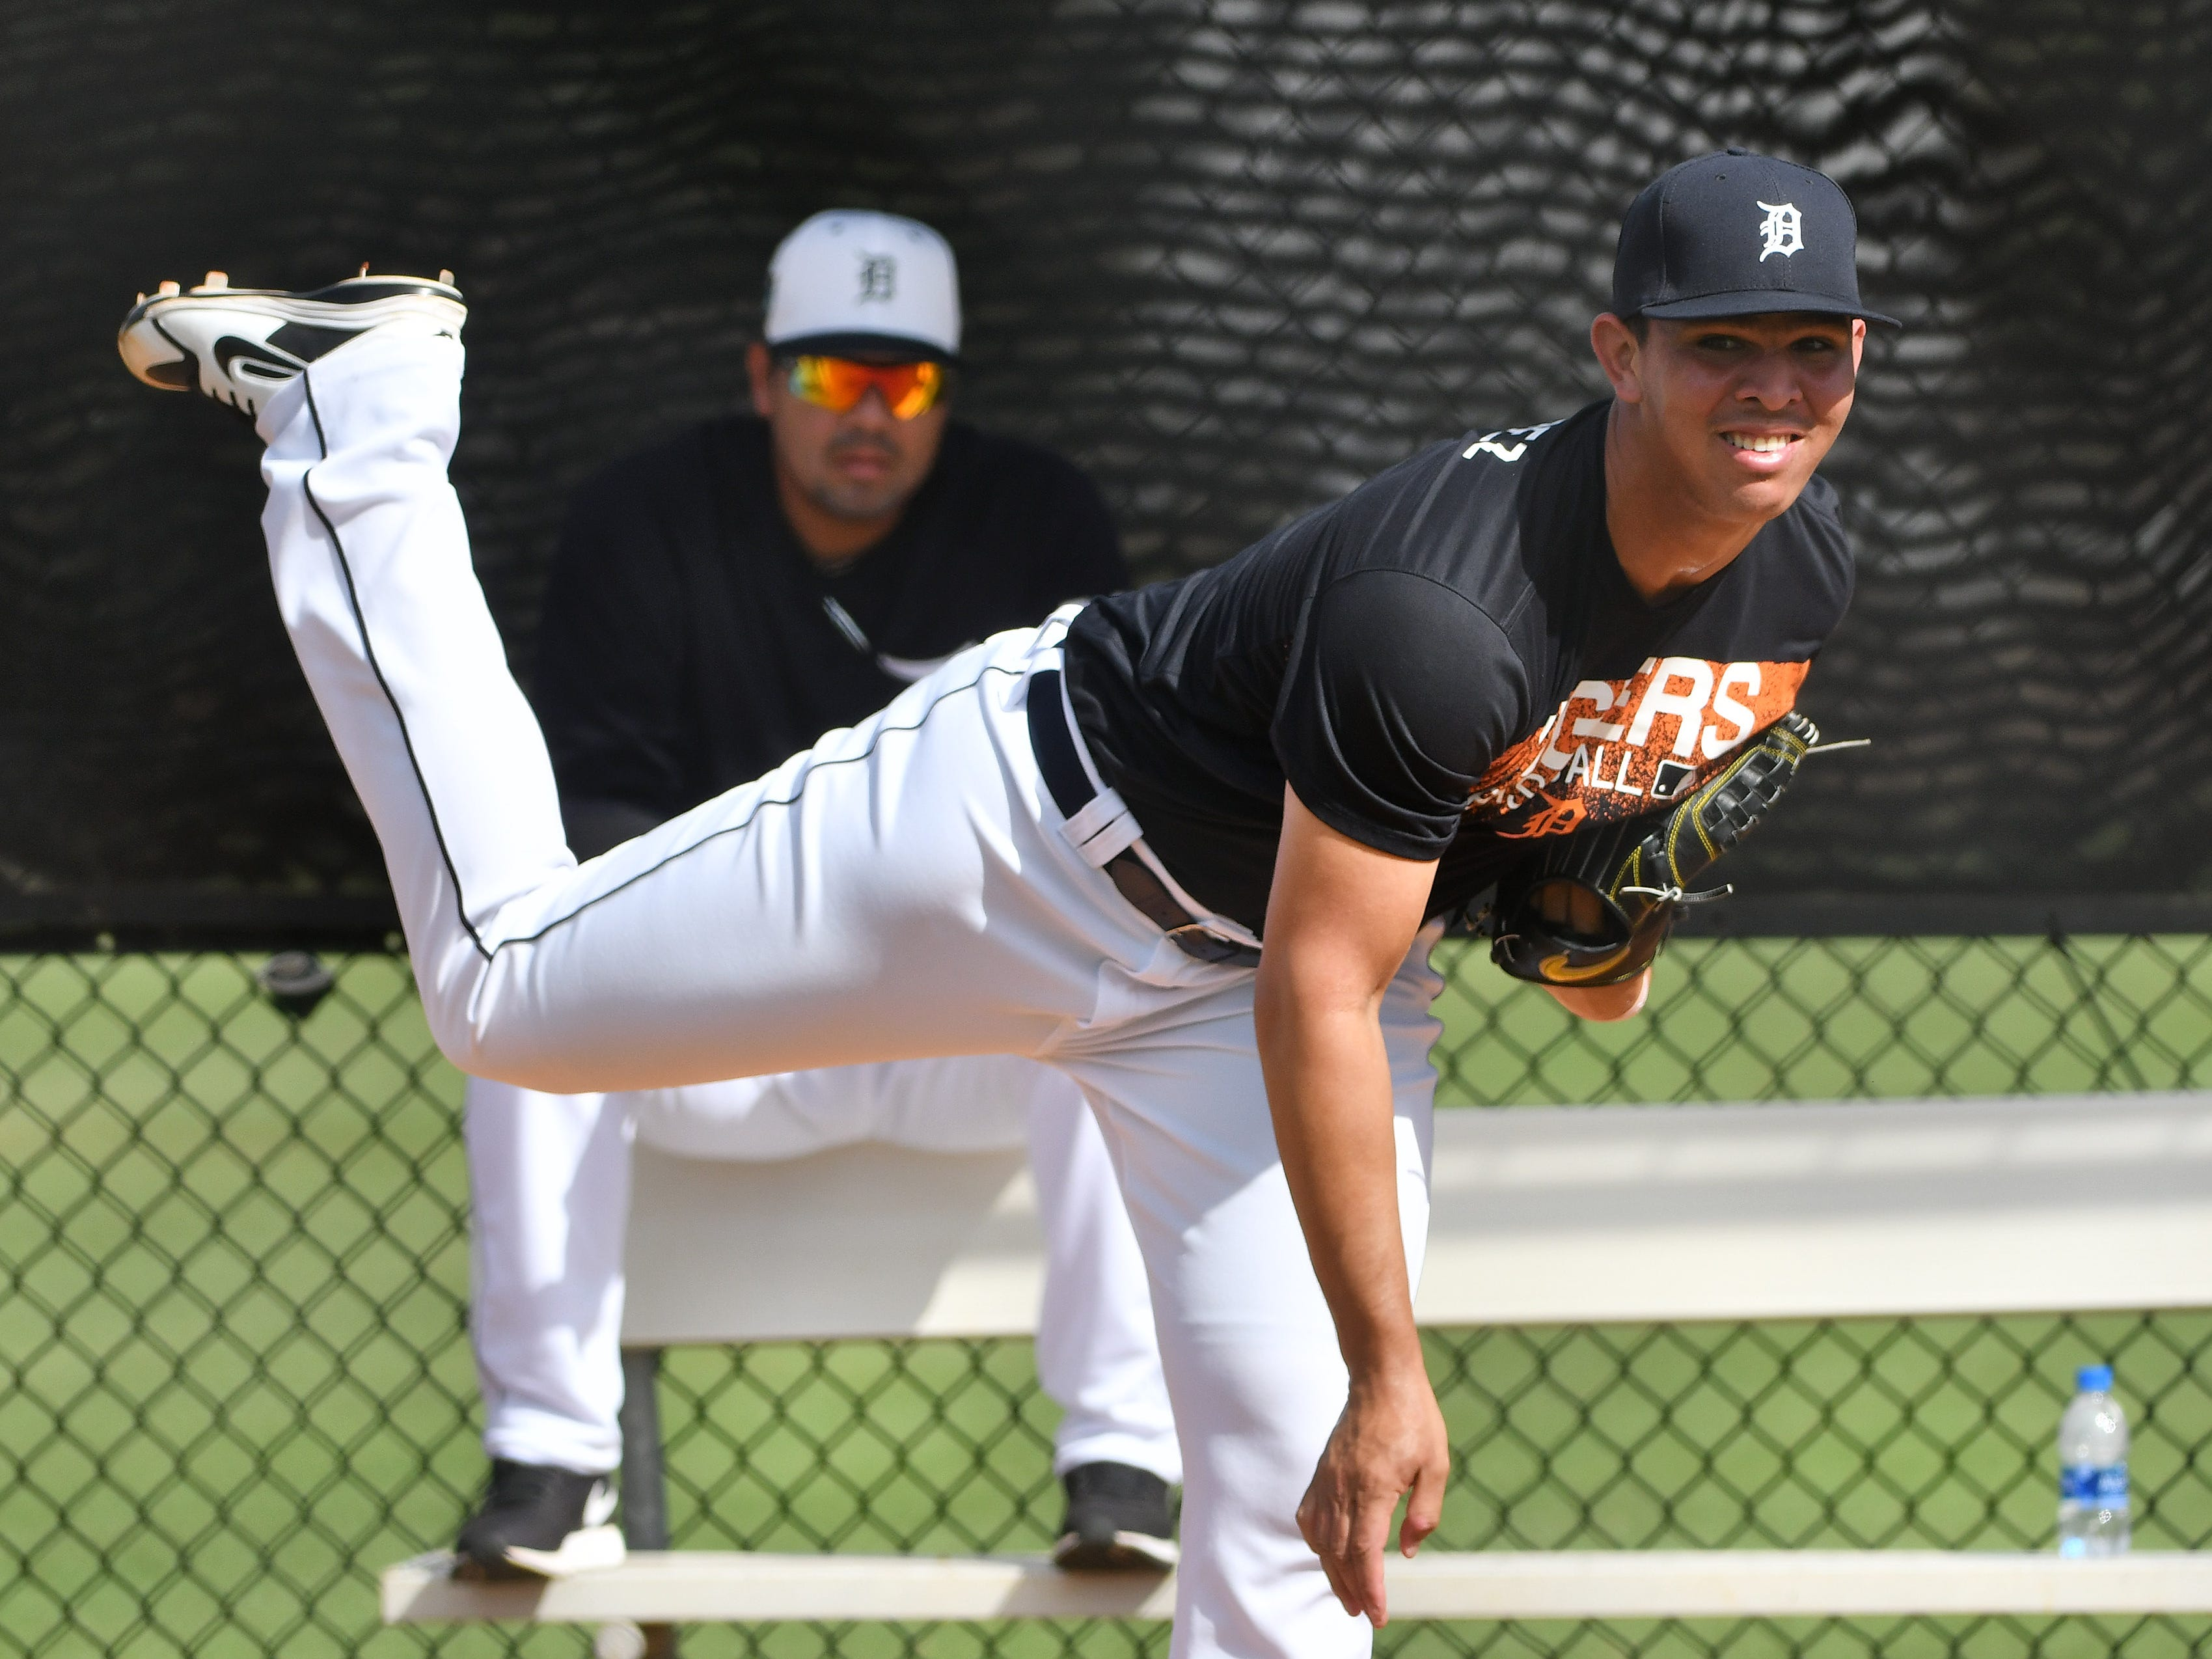 4. Franklin Perez, RH starter, 21, 6-3, 197: A year ago, Perez was atop our best-50 Tigers farm report. This year he slips three spots, mostly because he pitched in only seven games last season due to LAT muscle and shoulder issues that have since healed. He should return with Perez-like prowess in 2019. This was the premier prize in the Tigers' three-player trade return for Justin Verlander. A healthy spring camp and no black cats accompanying him to the mound during the regular season should restore his prospect prestige.